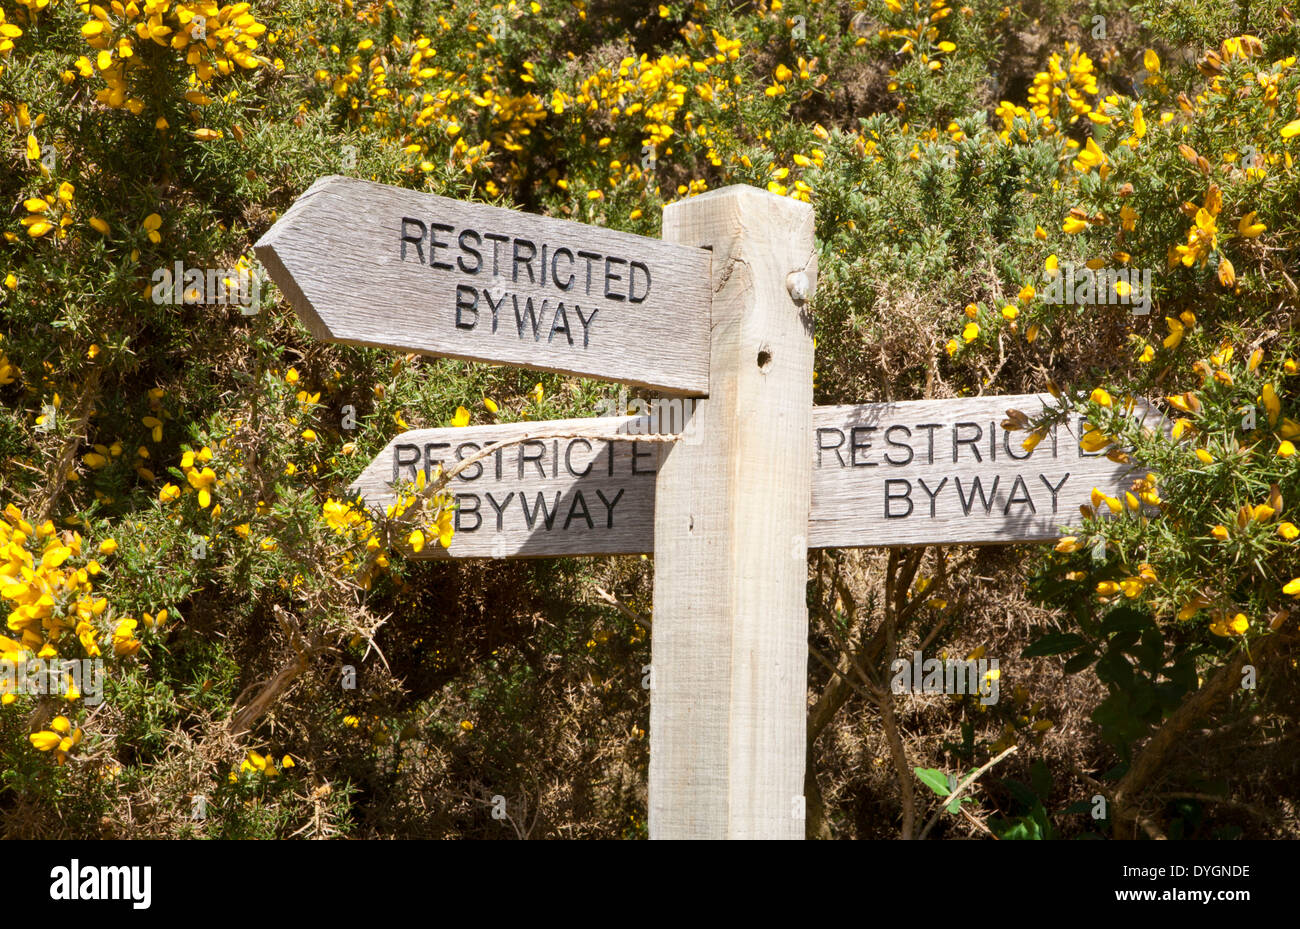 Wooden signpost for three restricted byway paths next to yellow flowers of common gorse bush, Shottisham, Suffolk, England - Stock Image